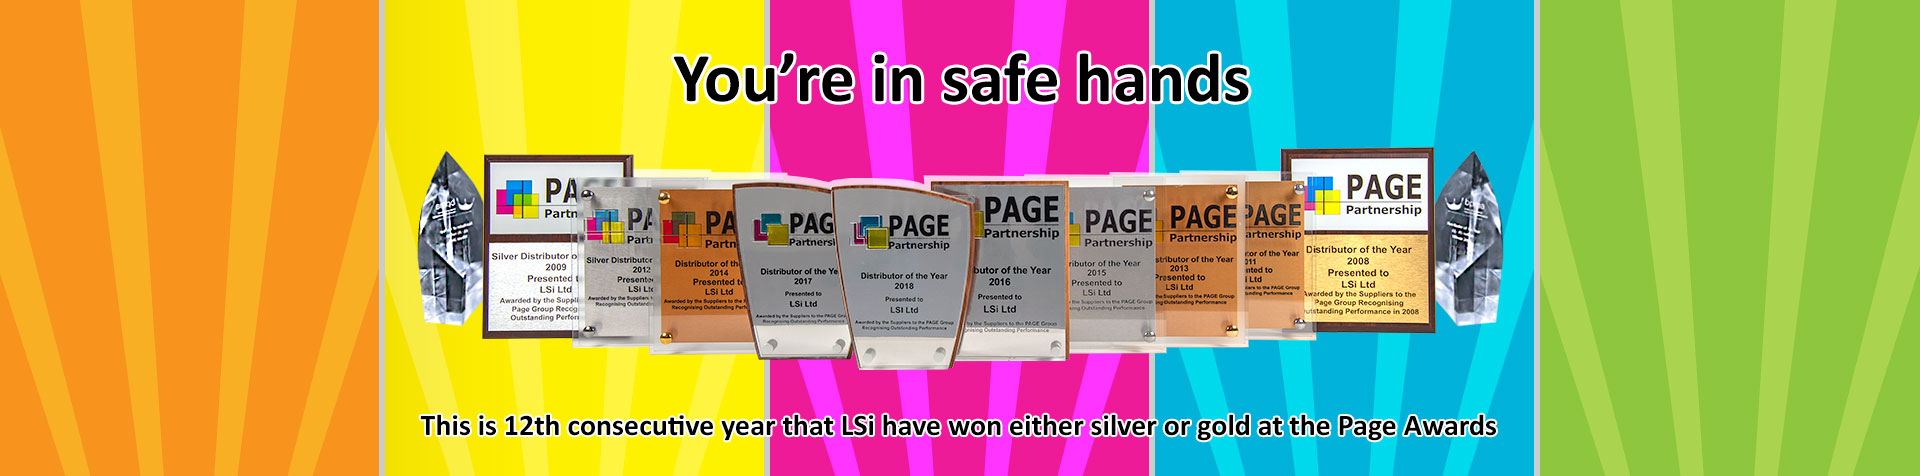 You're in safe hands